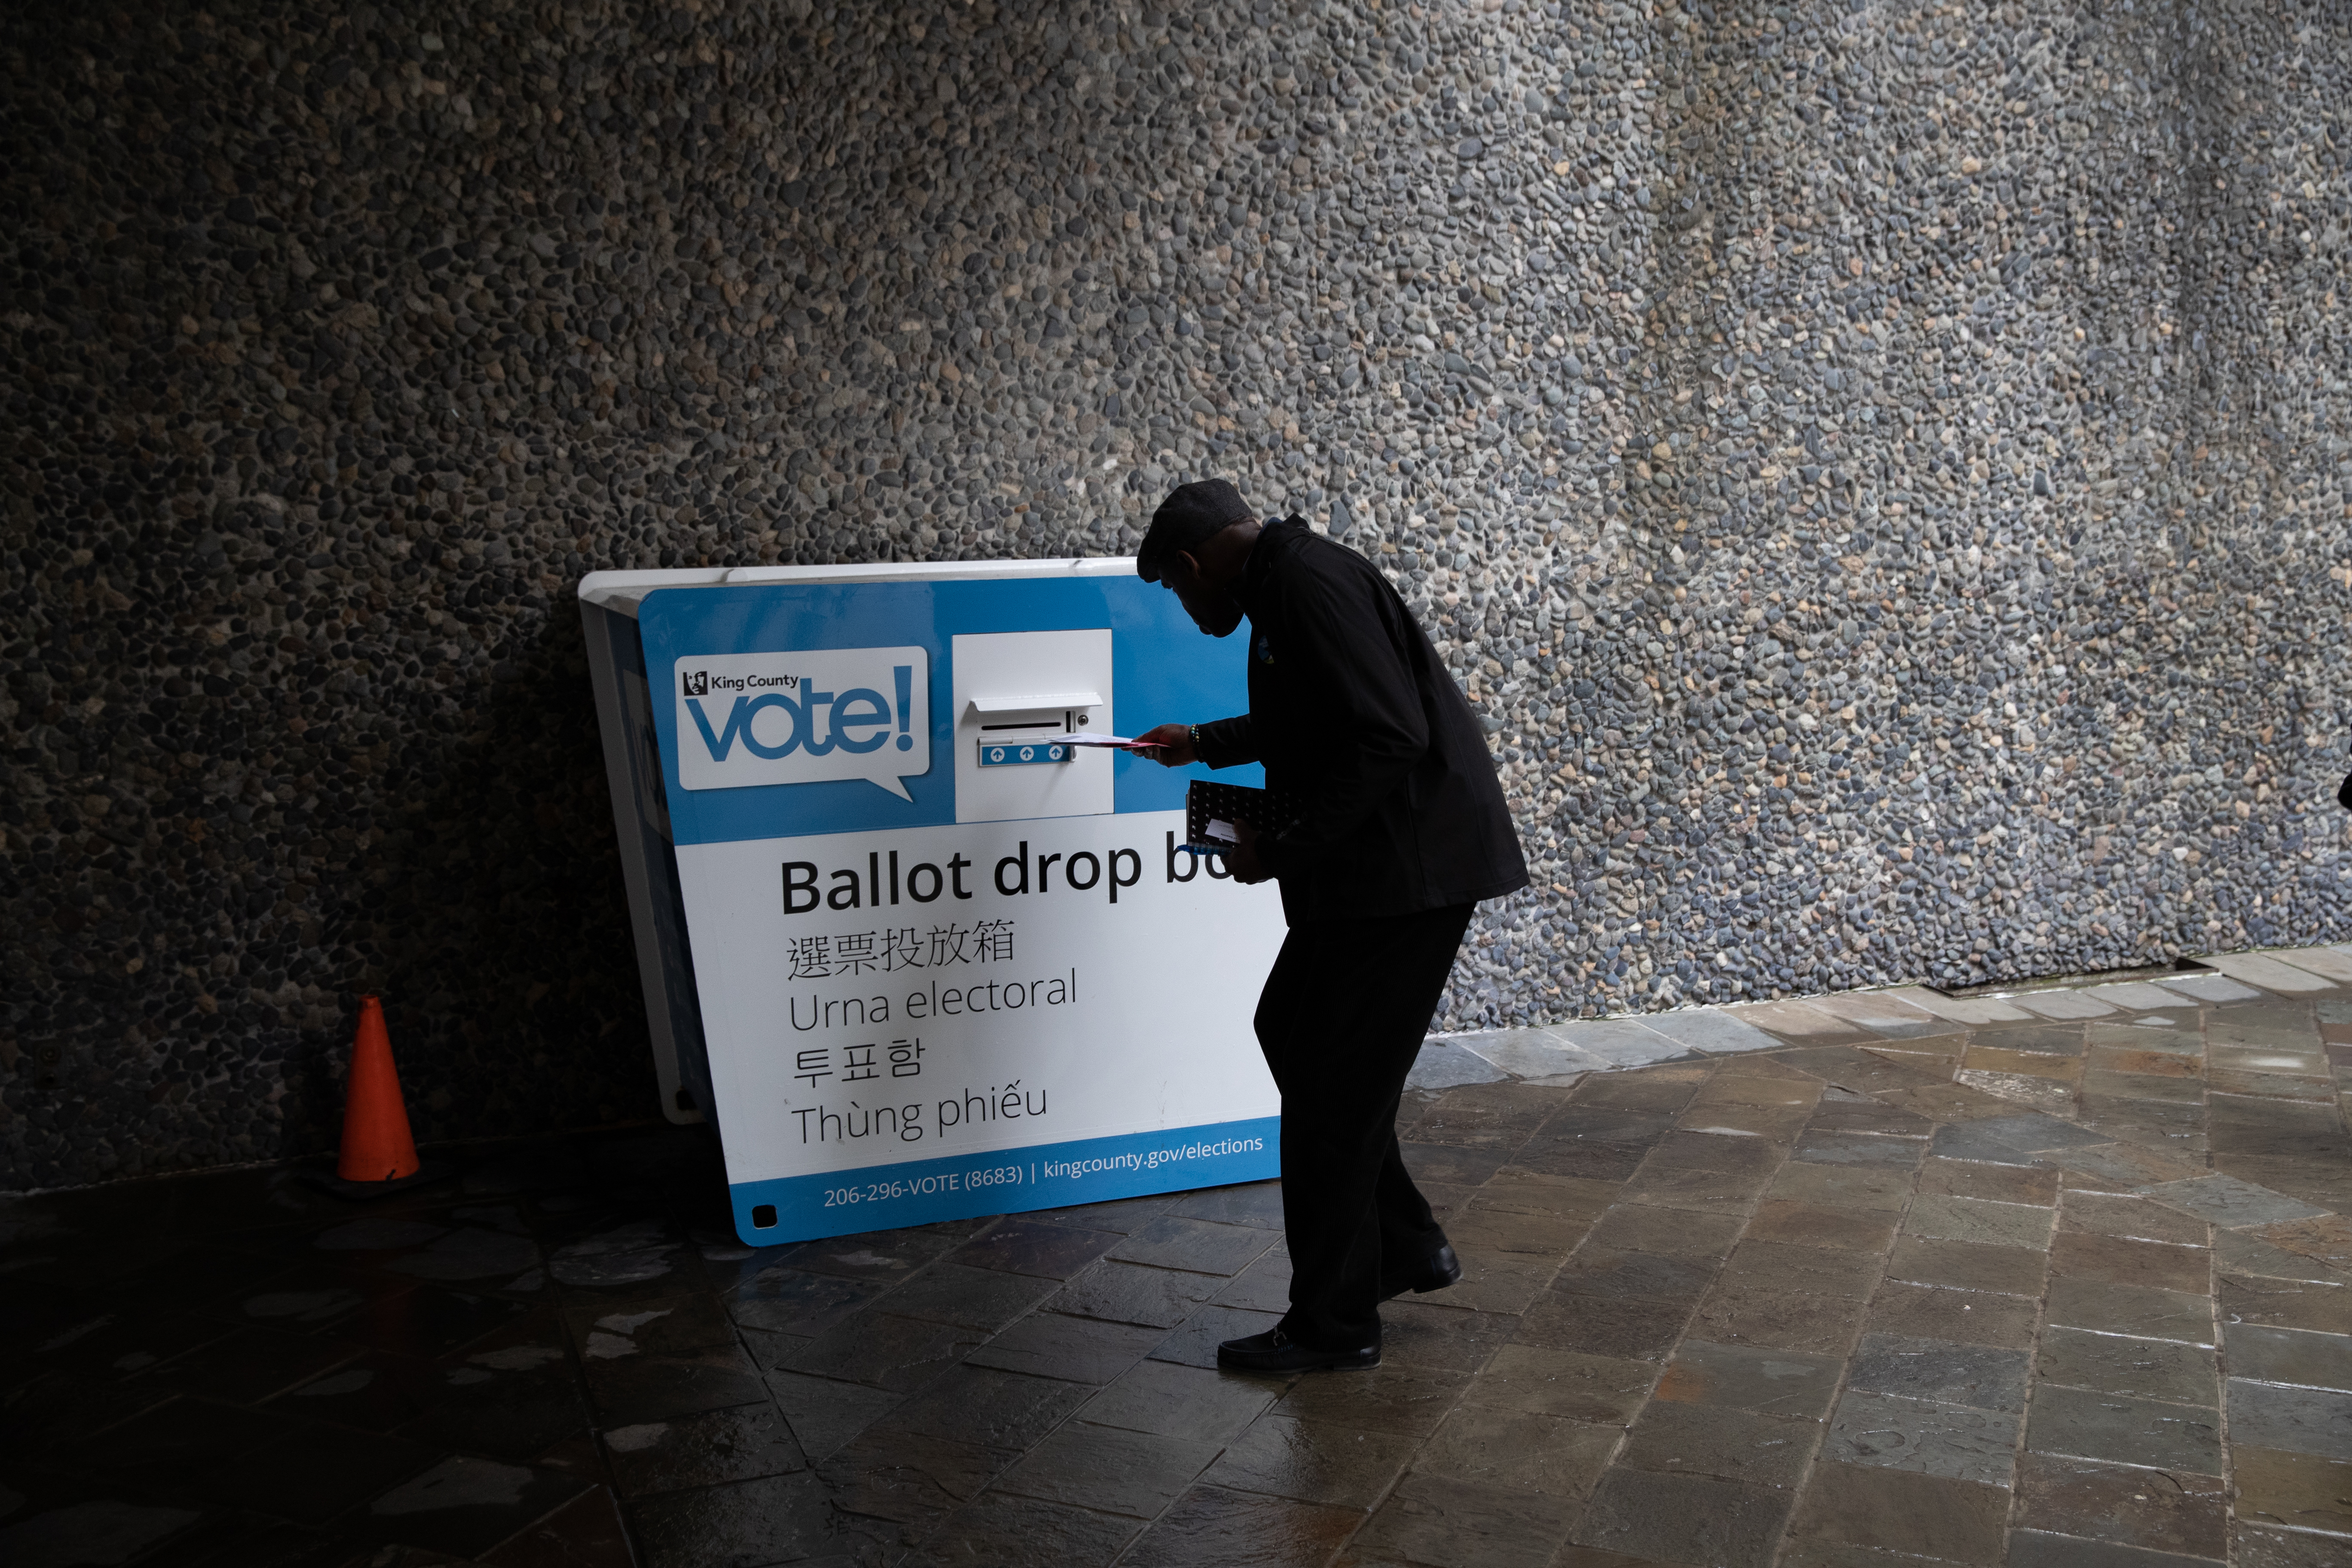 SEATTLE, WASHINGTON - MARCH 10: A voter casts his ballot during primary elections on March 10, 2020 in Seattle, Washington. Although most Washington State ballots are mailed-in, many people deposit their votes in ballot drop boxes throughout the state. (Photo by John Moore/Getty Images)